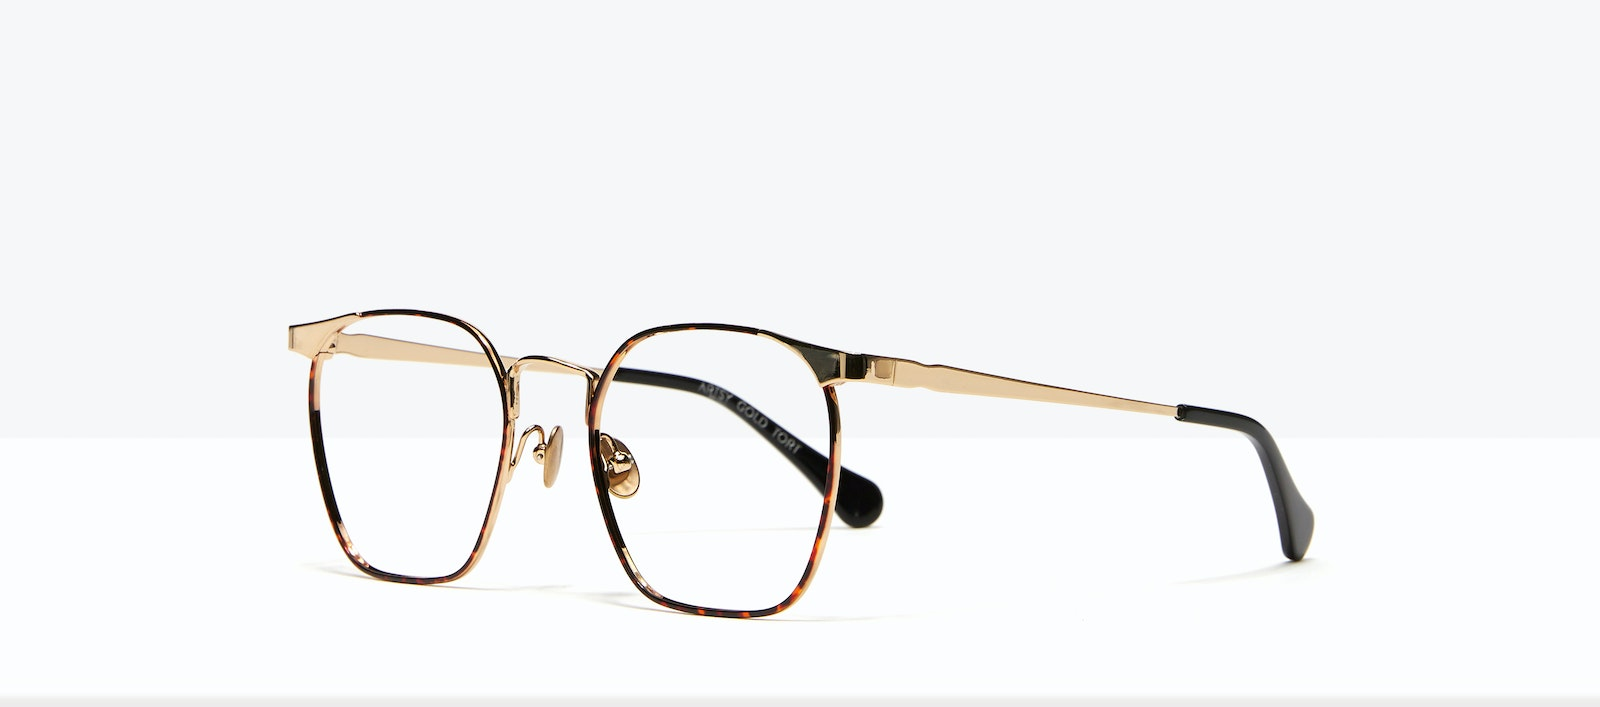 Affordable Fashion Glasses Square Eyeglasses Women Artsy Gold Tort Tilt